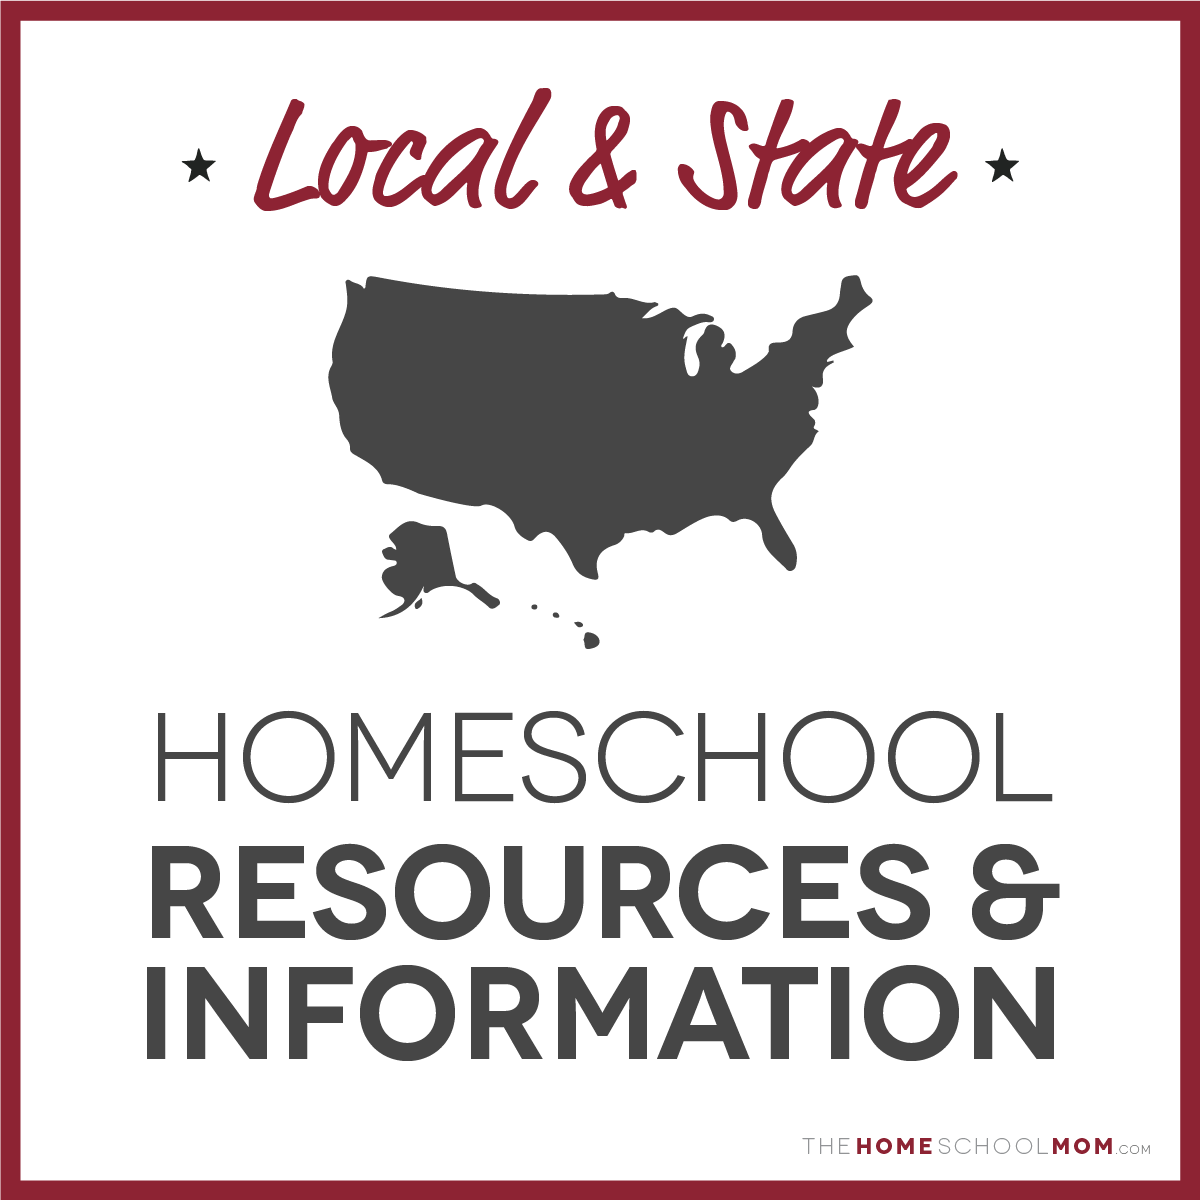 Map of united states with text Local & State Homeschool Resources & Information - TheHomeSchoolMom